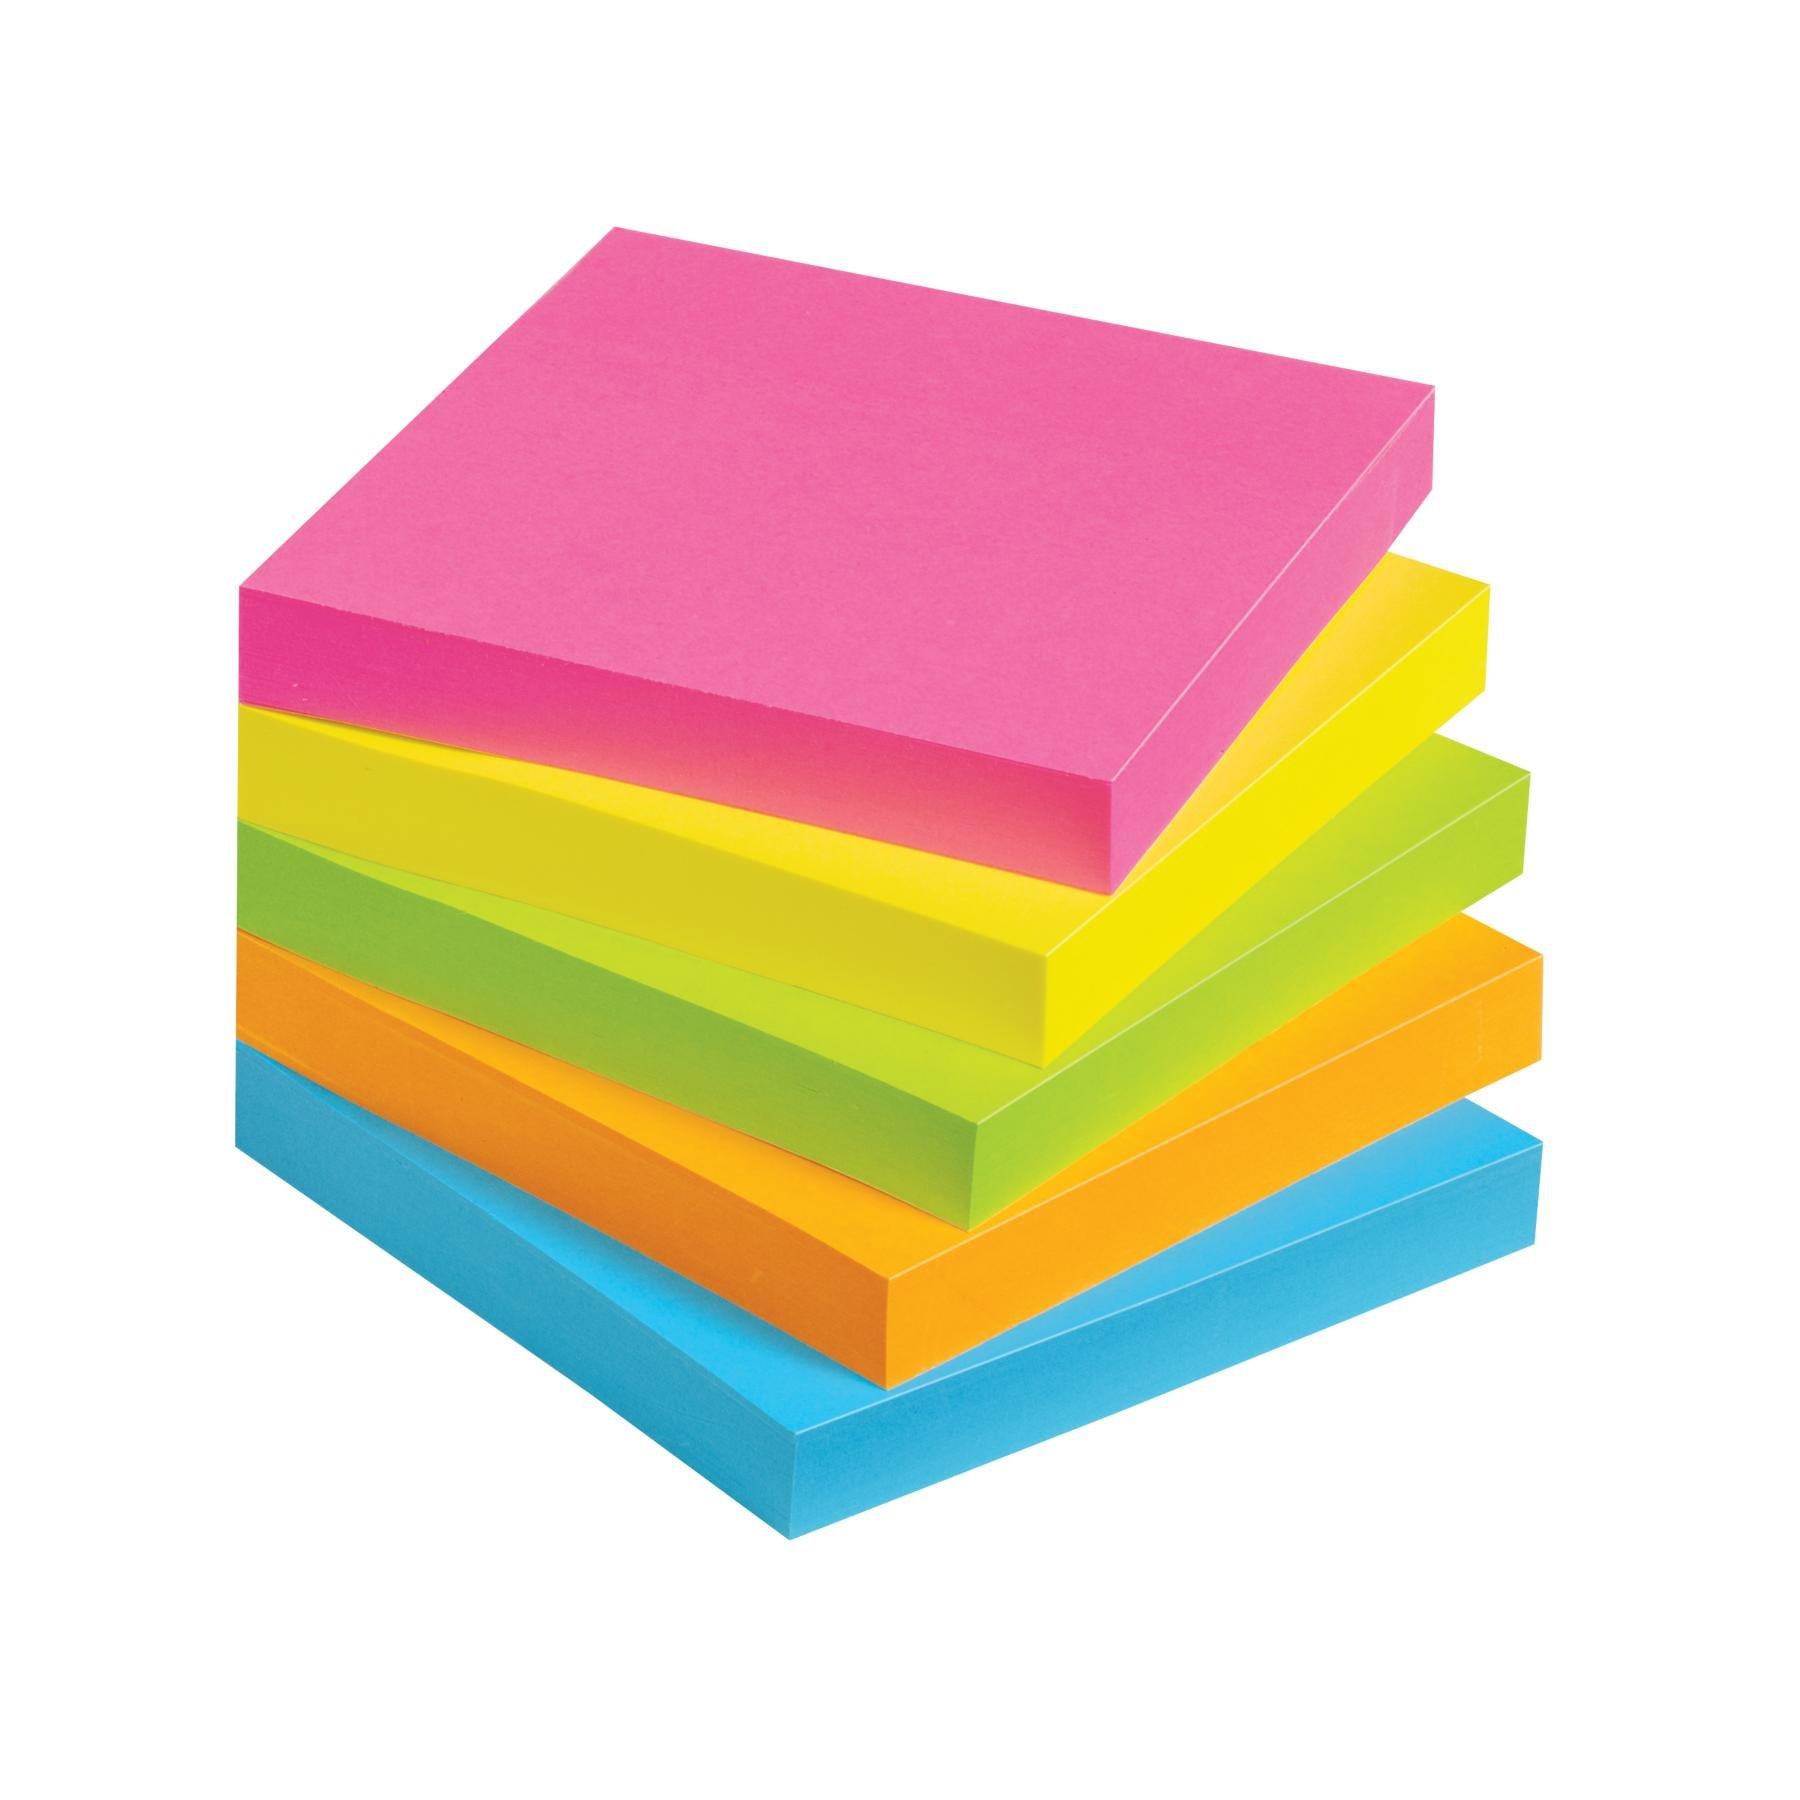 Avery lay flat sticky notes inches brigh-Avery lay flat sticky notes inches bright colors clip art image-11